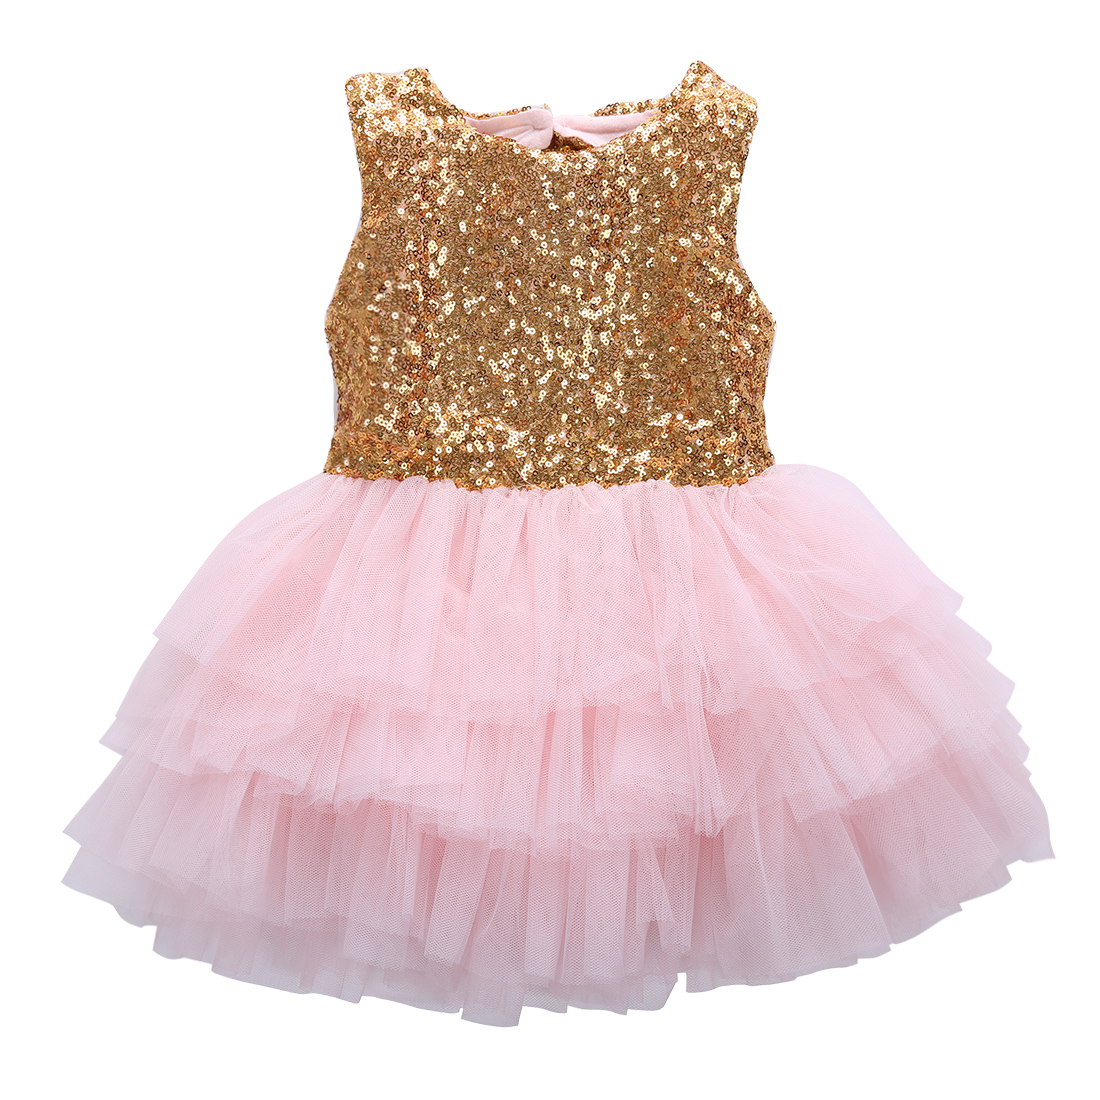 Princess Baby Kids Girl Bowknot Sequin Tutu Dress Wedding Party Formal Dresses